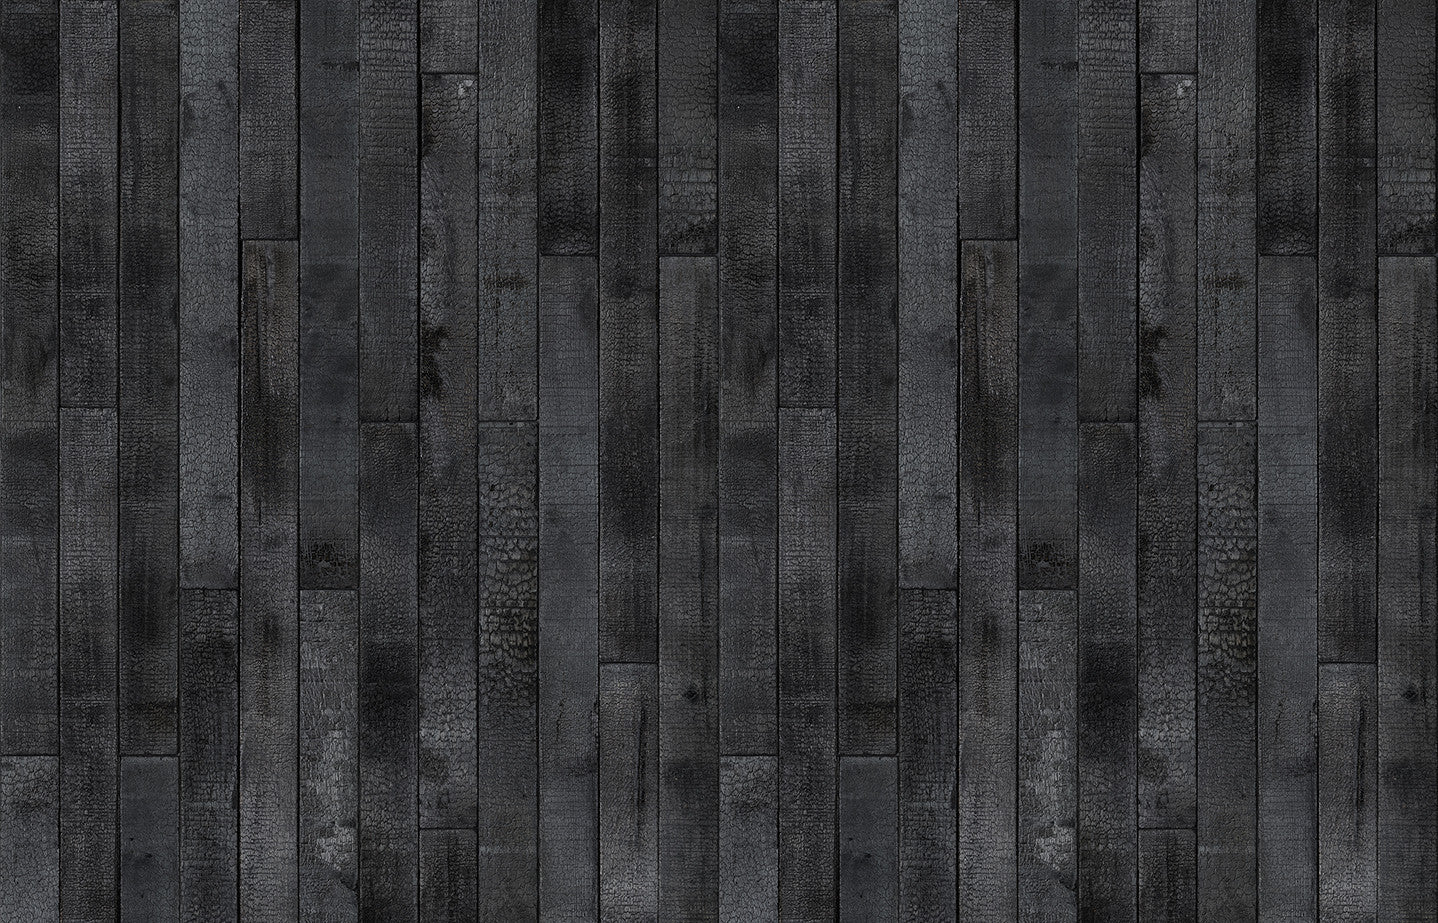 Maarten Baas Burnt Wood Wallpaper Design By Piet Hein Eek